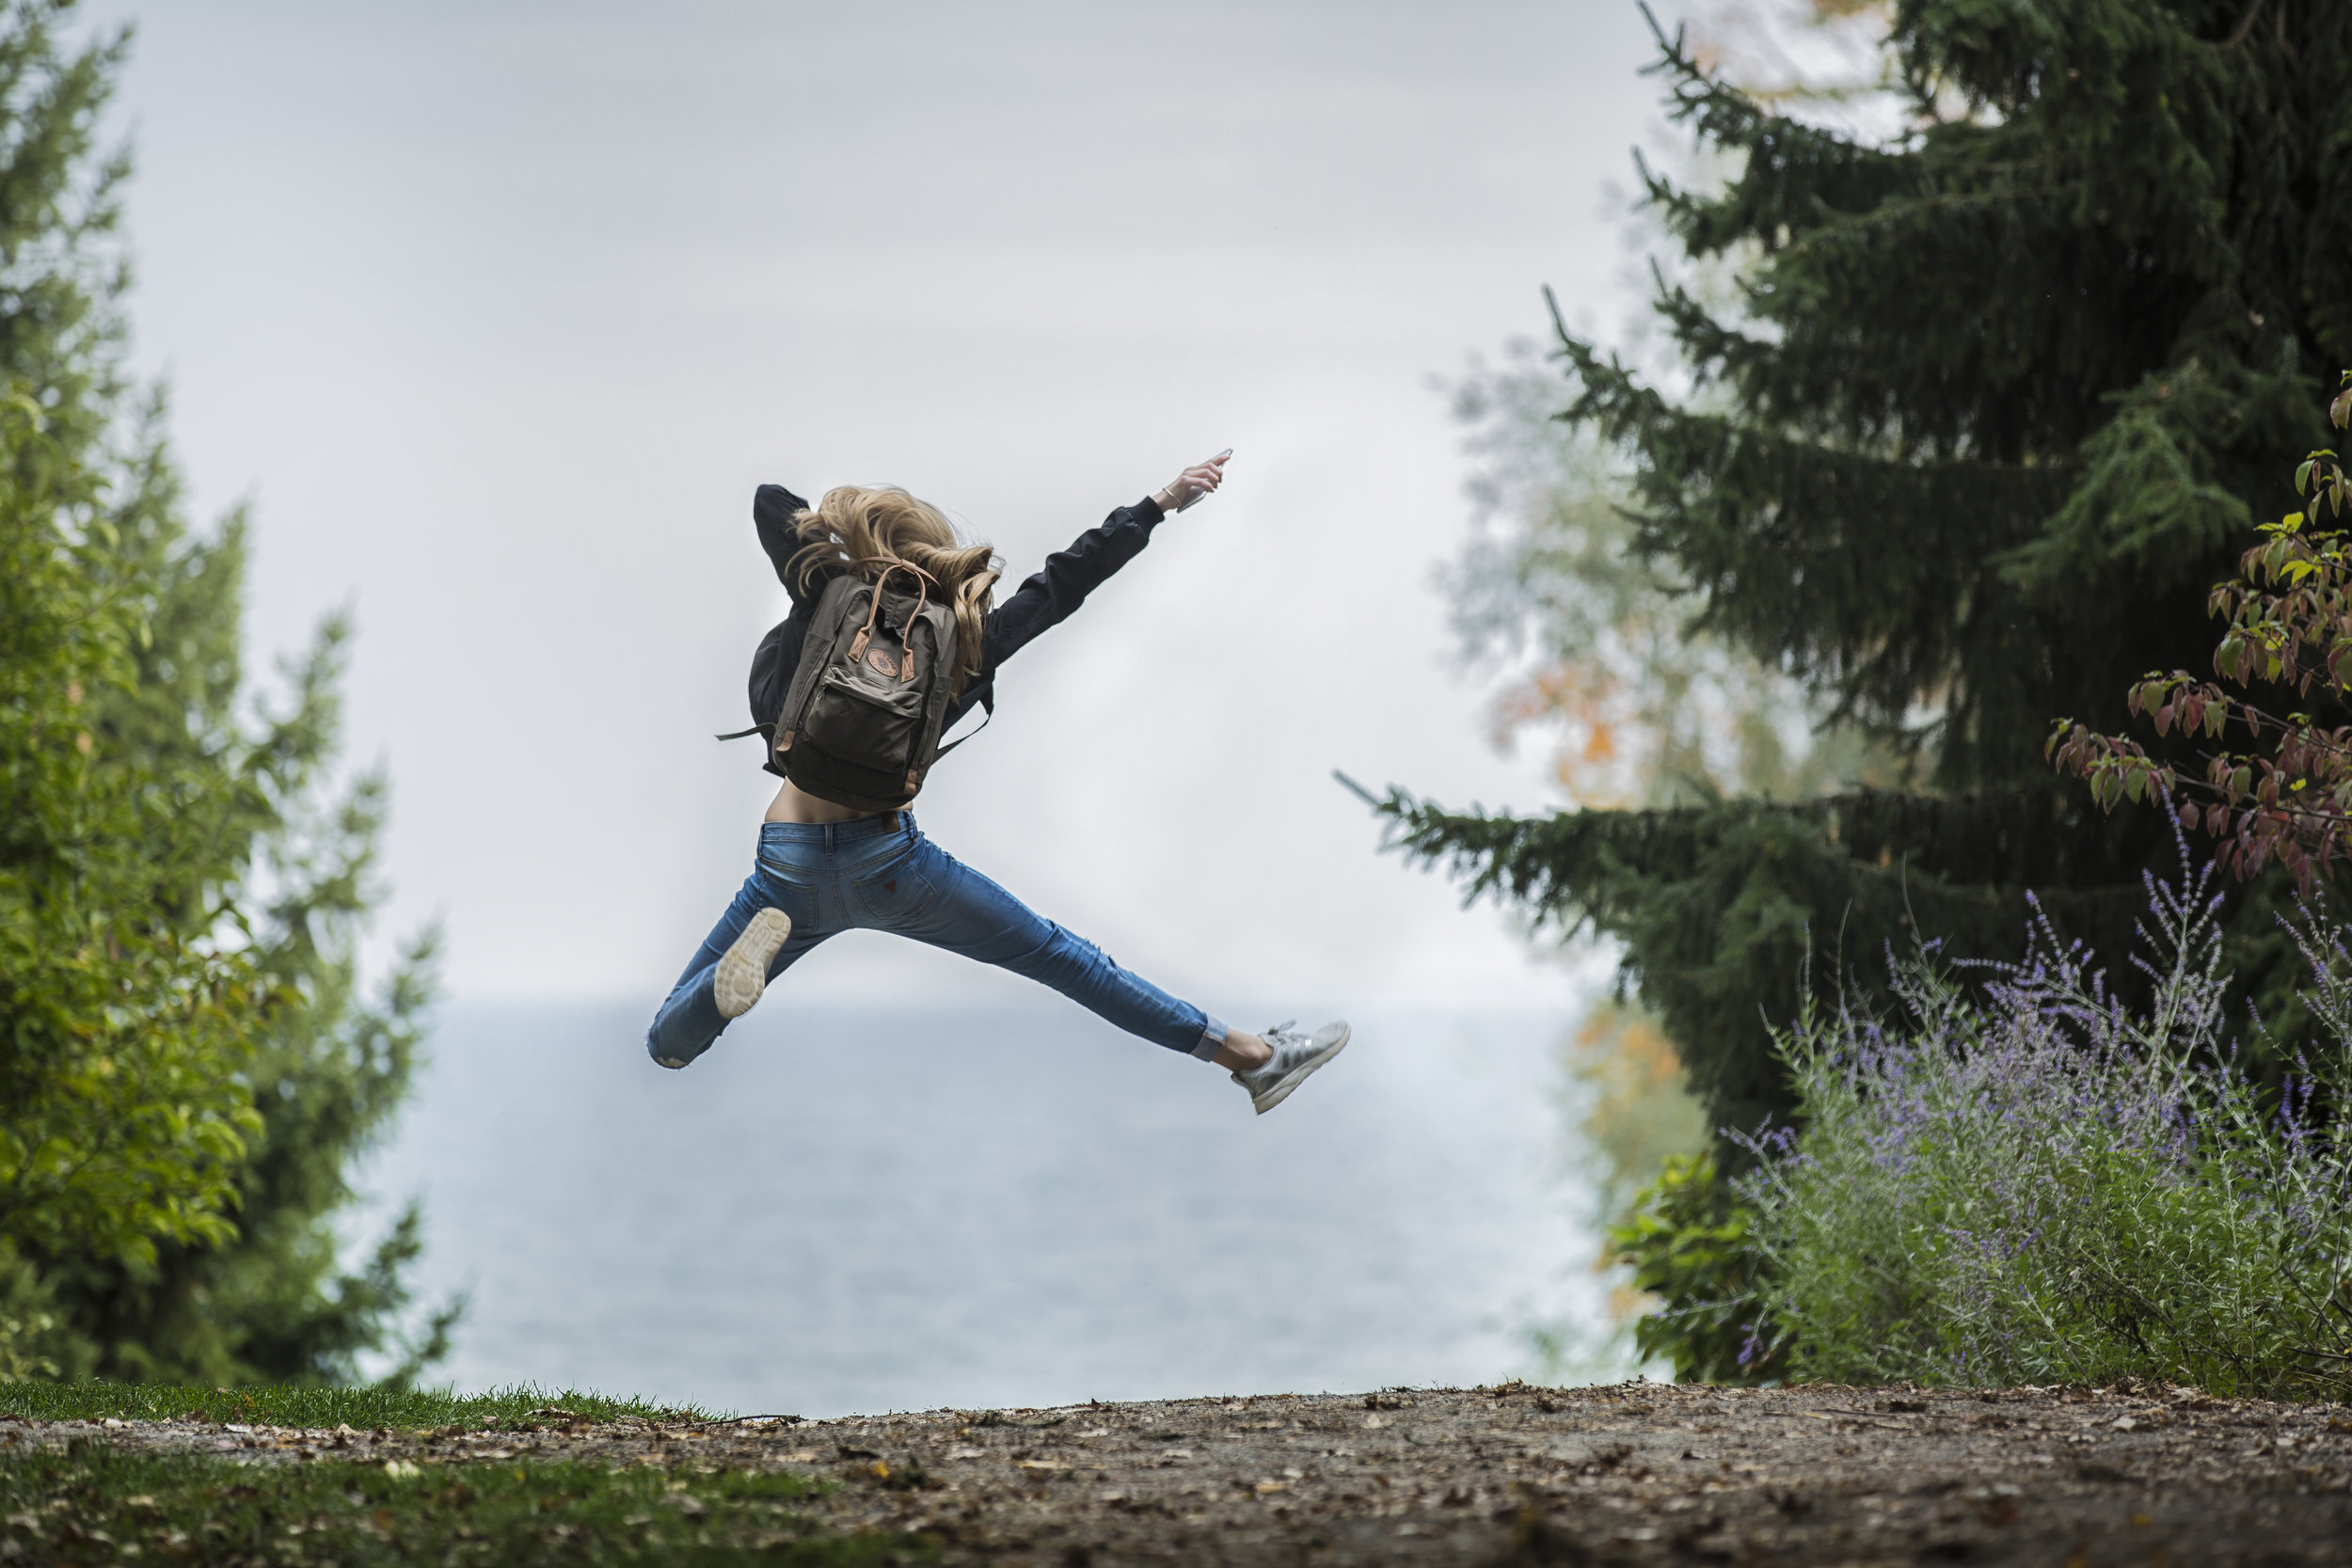 joyful teenager leaping in the air by Grand Traverse Bay, healthy teenager, adolescent counseling, therapy for teens